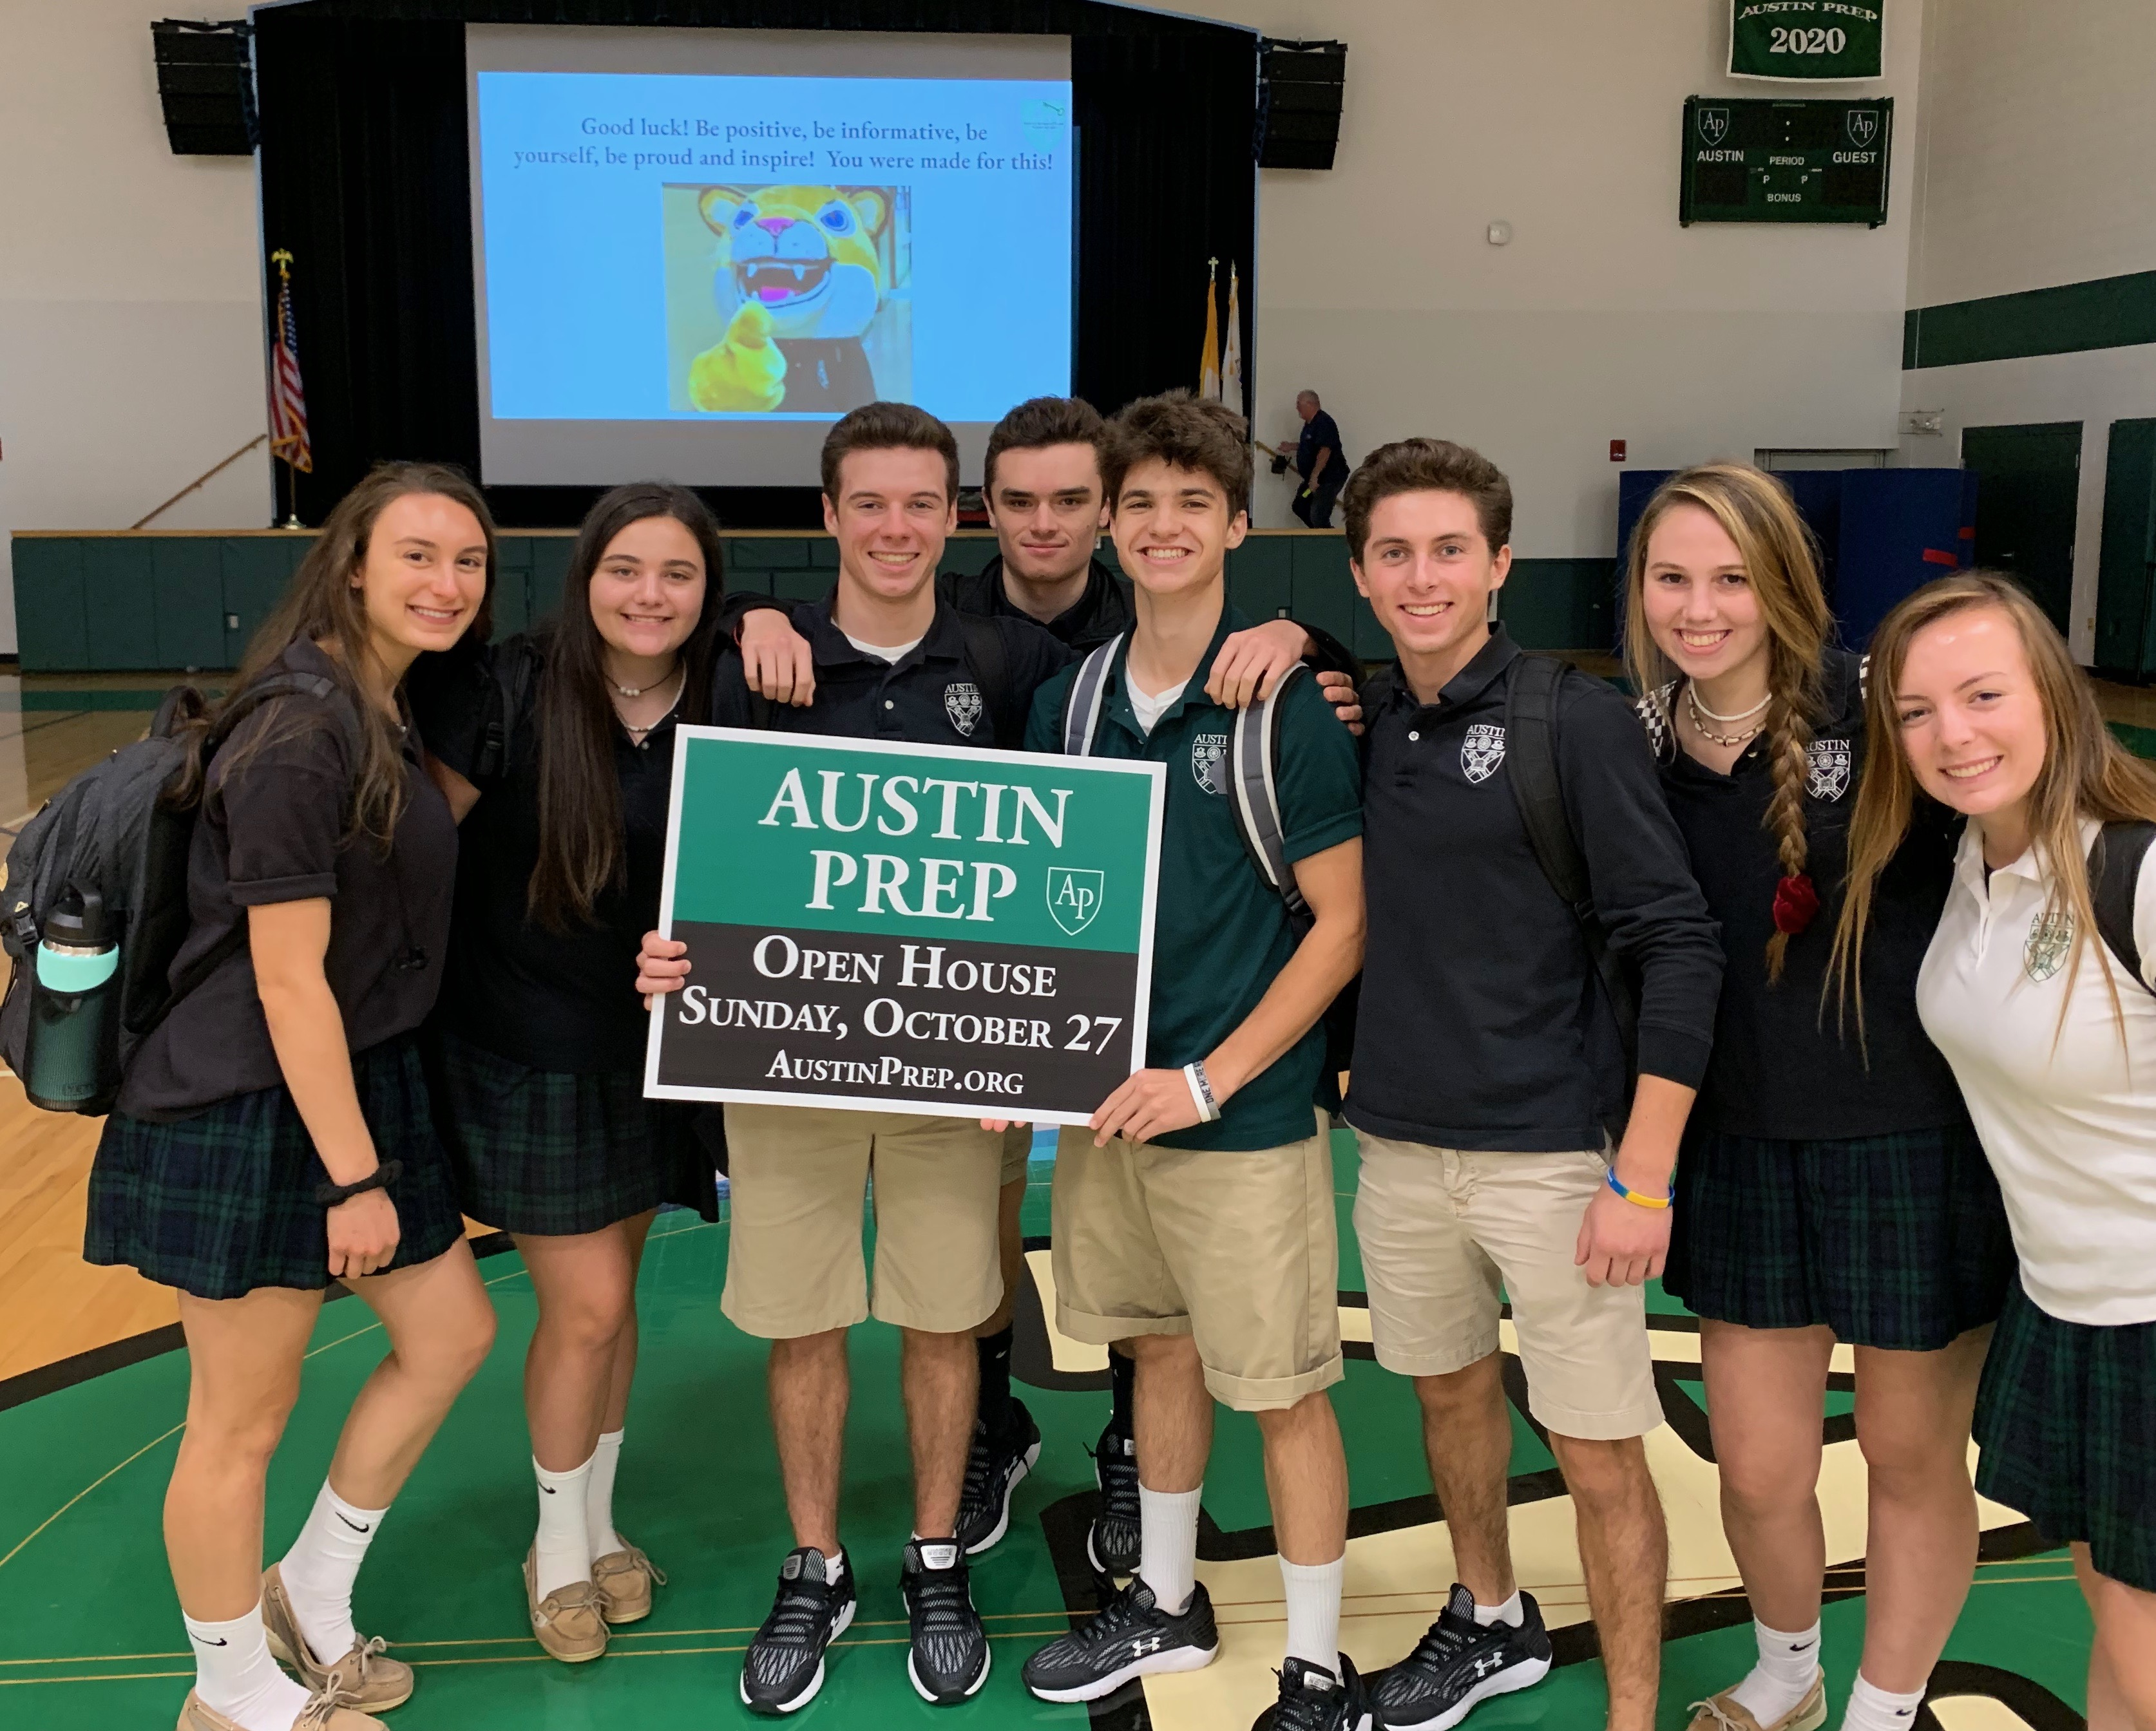 Students at the Austin Prep open house